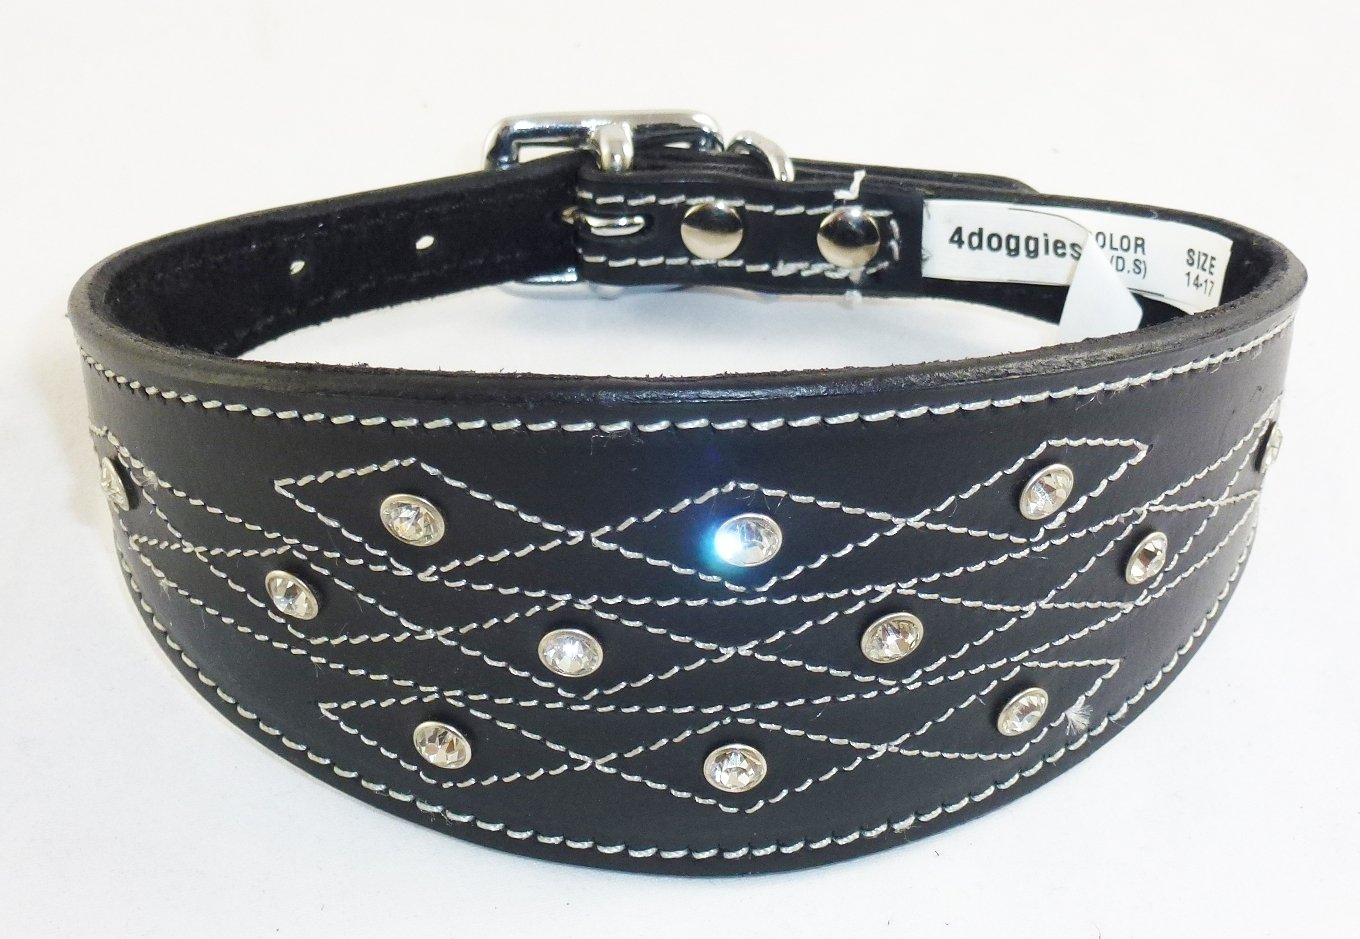 12-14 Inch Black Whippet Leather Collar Diamante Stiching Design